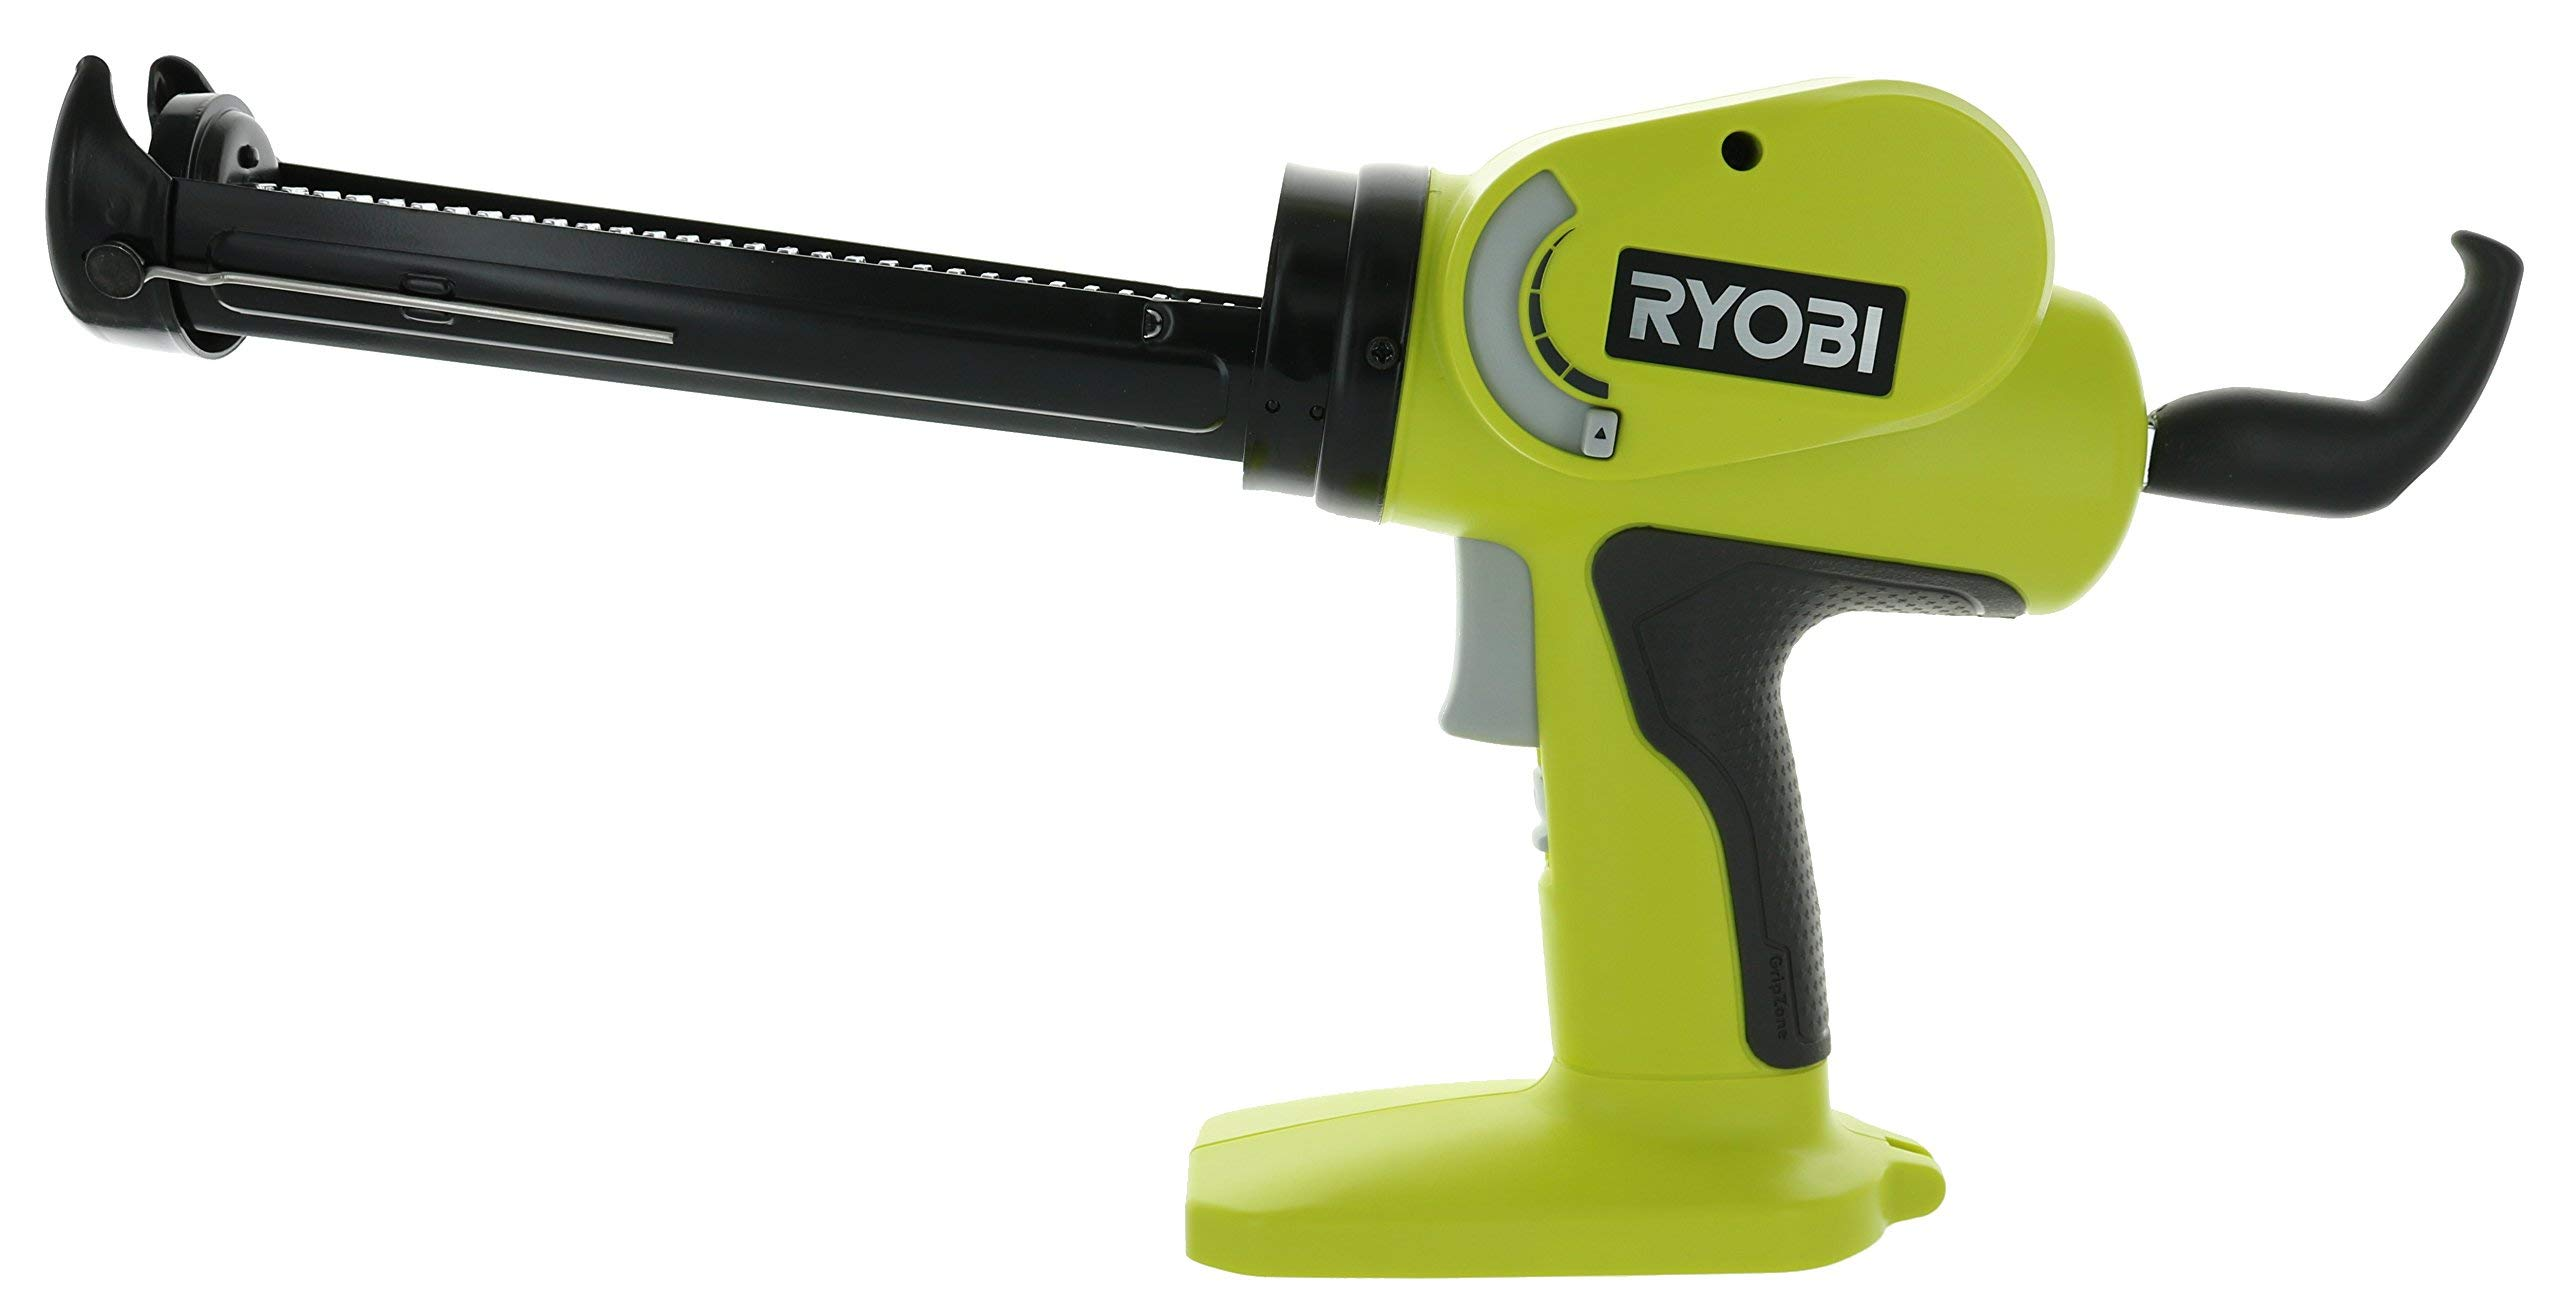 Ryobi P310G 18v Pistol Grip Variable Discharge Rate Power Caulk and Adhesive Gun (Tool Only, Holds 10 Ounce Carriage) (Certified Refurbished)